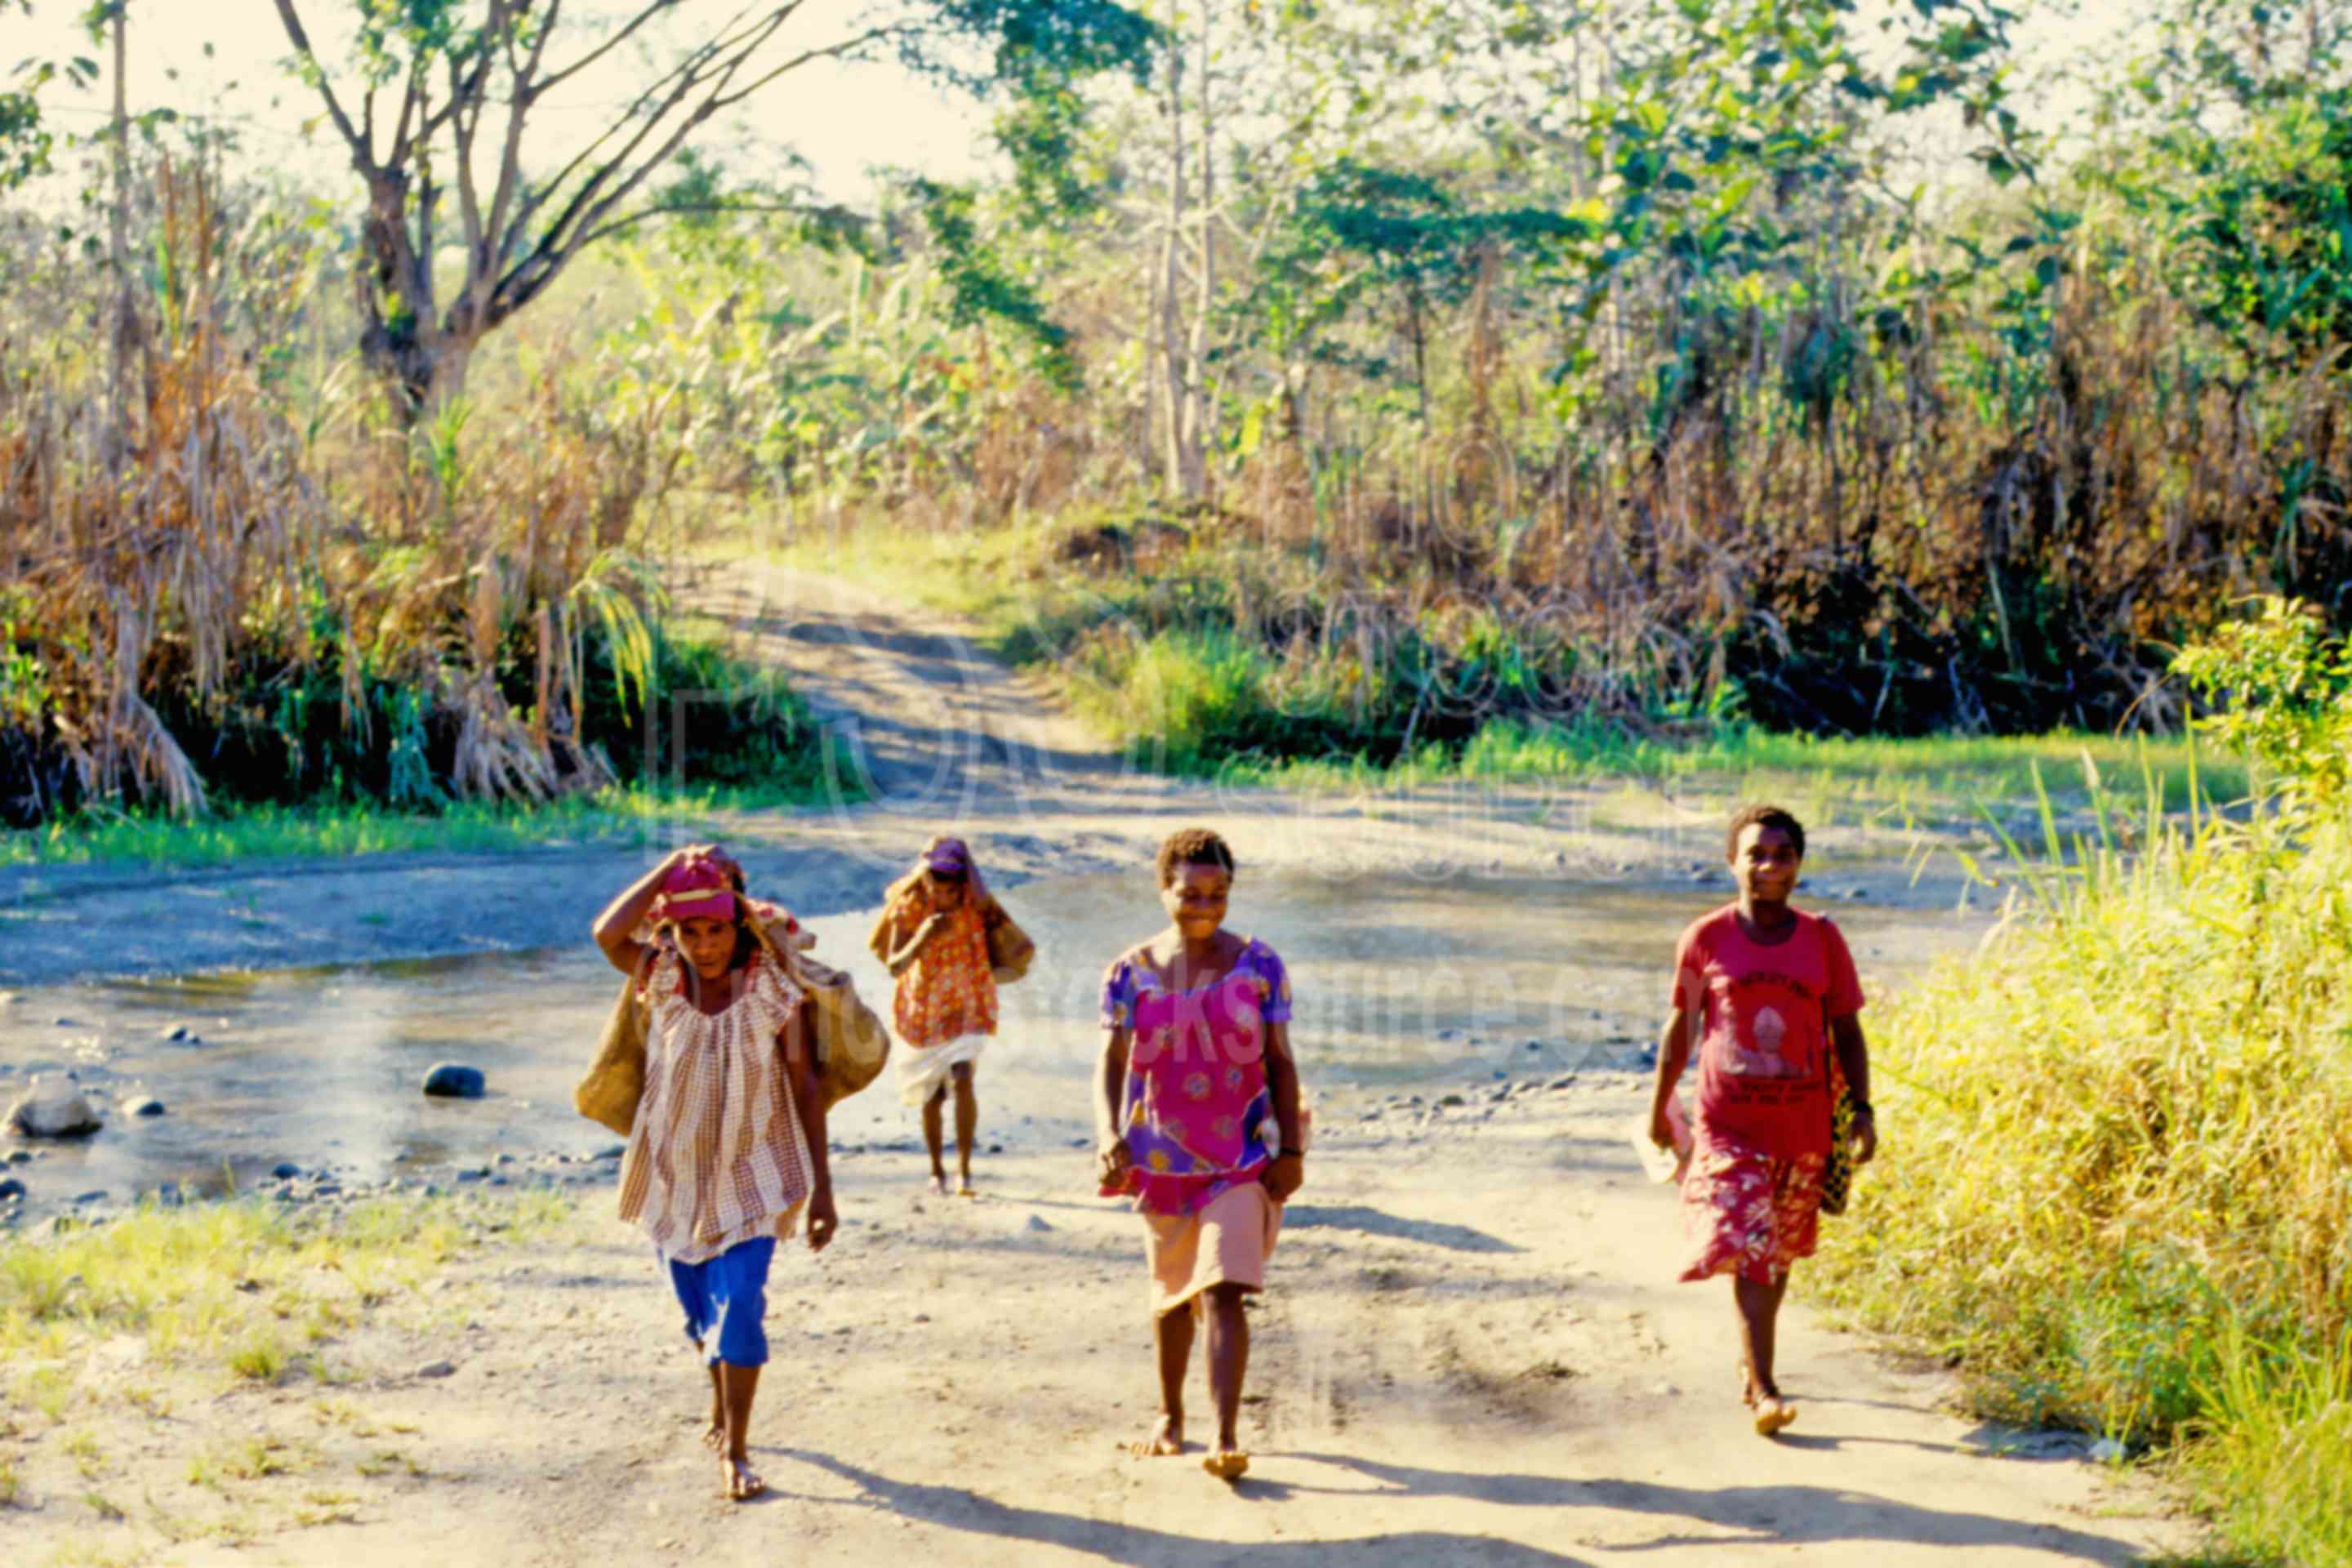 Women walking to market,bilum bag,river,walking,women